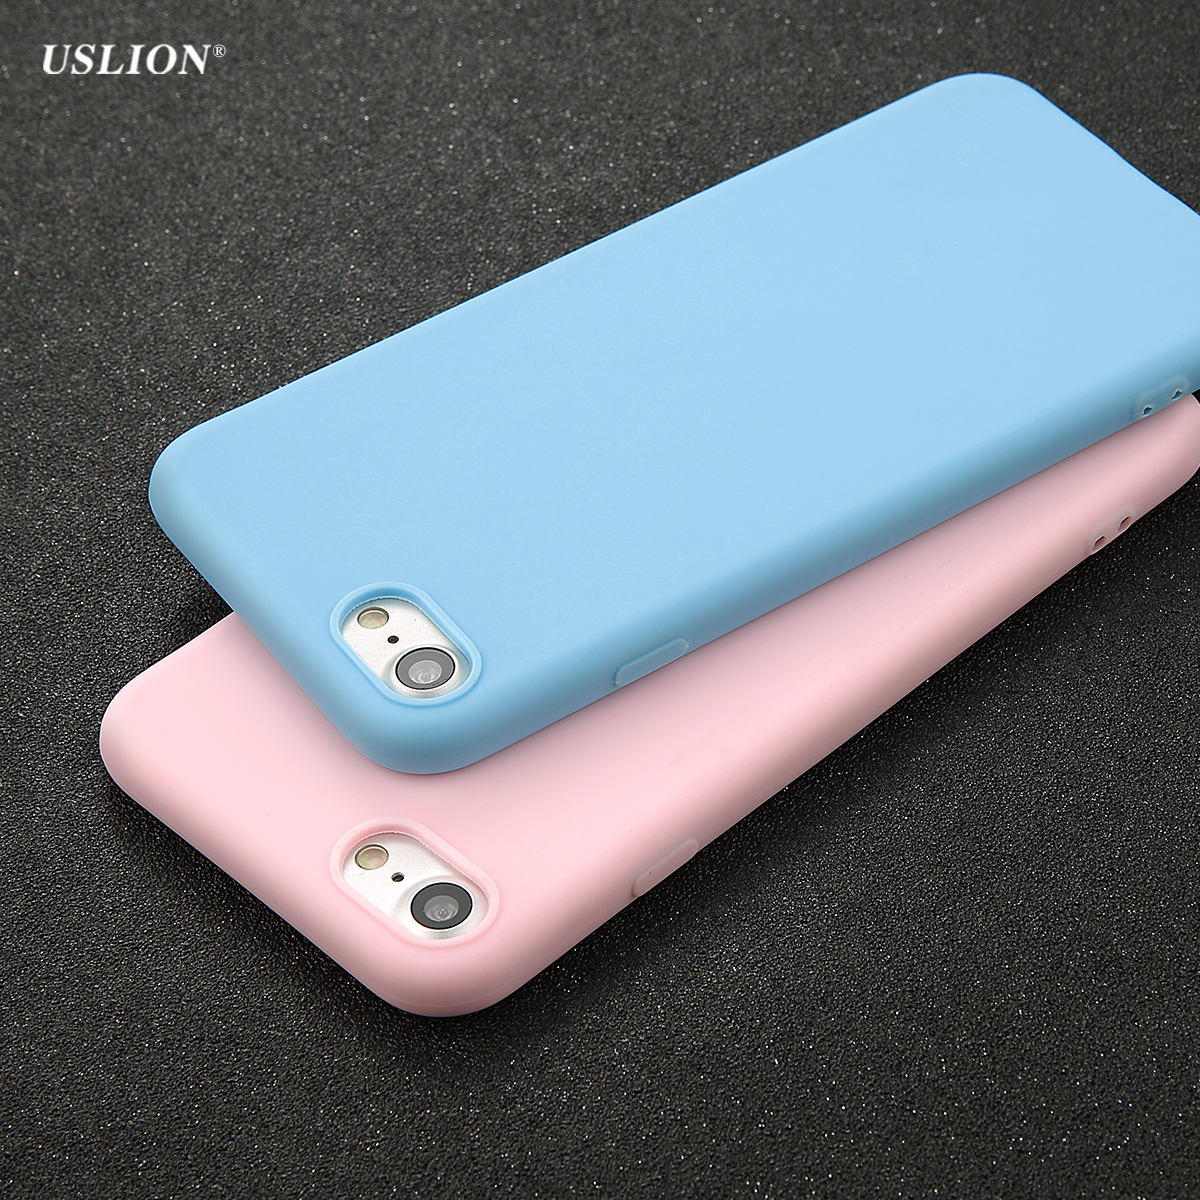 USLION Phone Case For iPhone 7 6 6s 8 X Plus 5 5s SE XR XS Simple Solid Color Ultrathin Soft TPU Cases Candy Color Back Cover floveme for iphone 6 6s iphone 7 8 plus ultra thin cases for iphone x xs max xr clear tpu phone cases for iphone 5s 5 se fundas